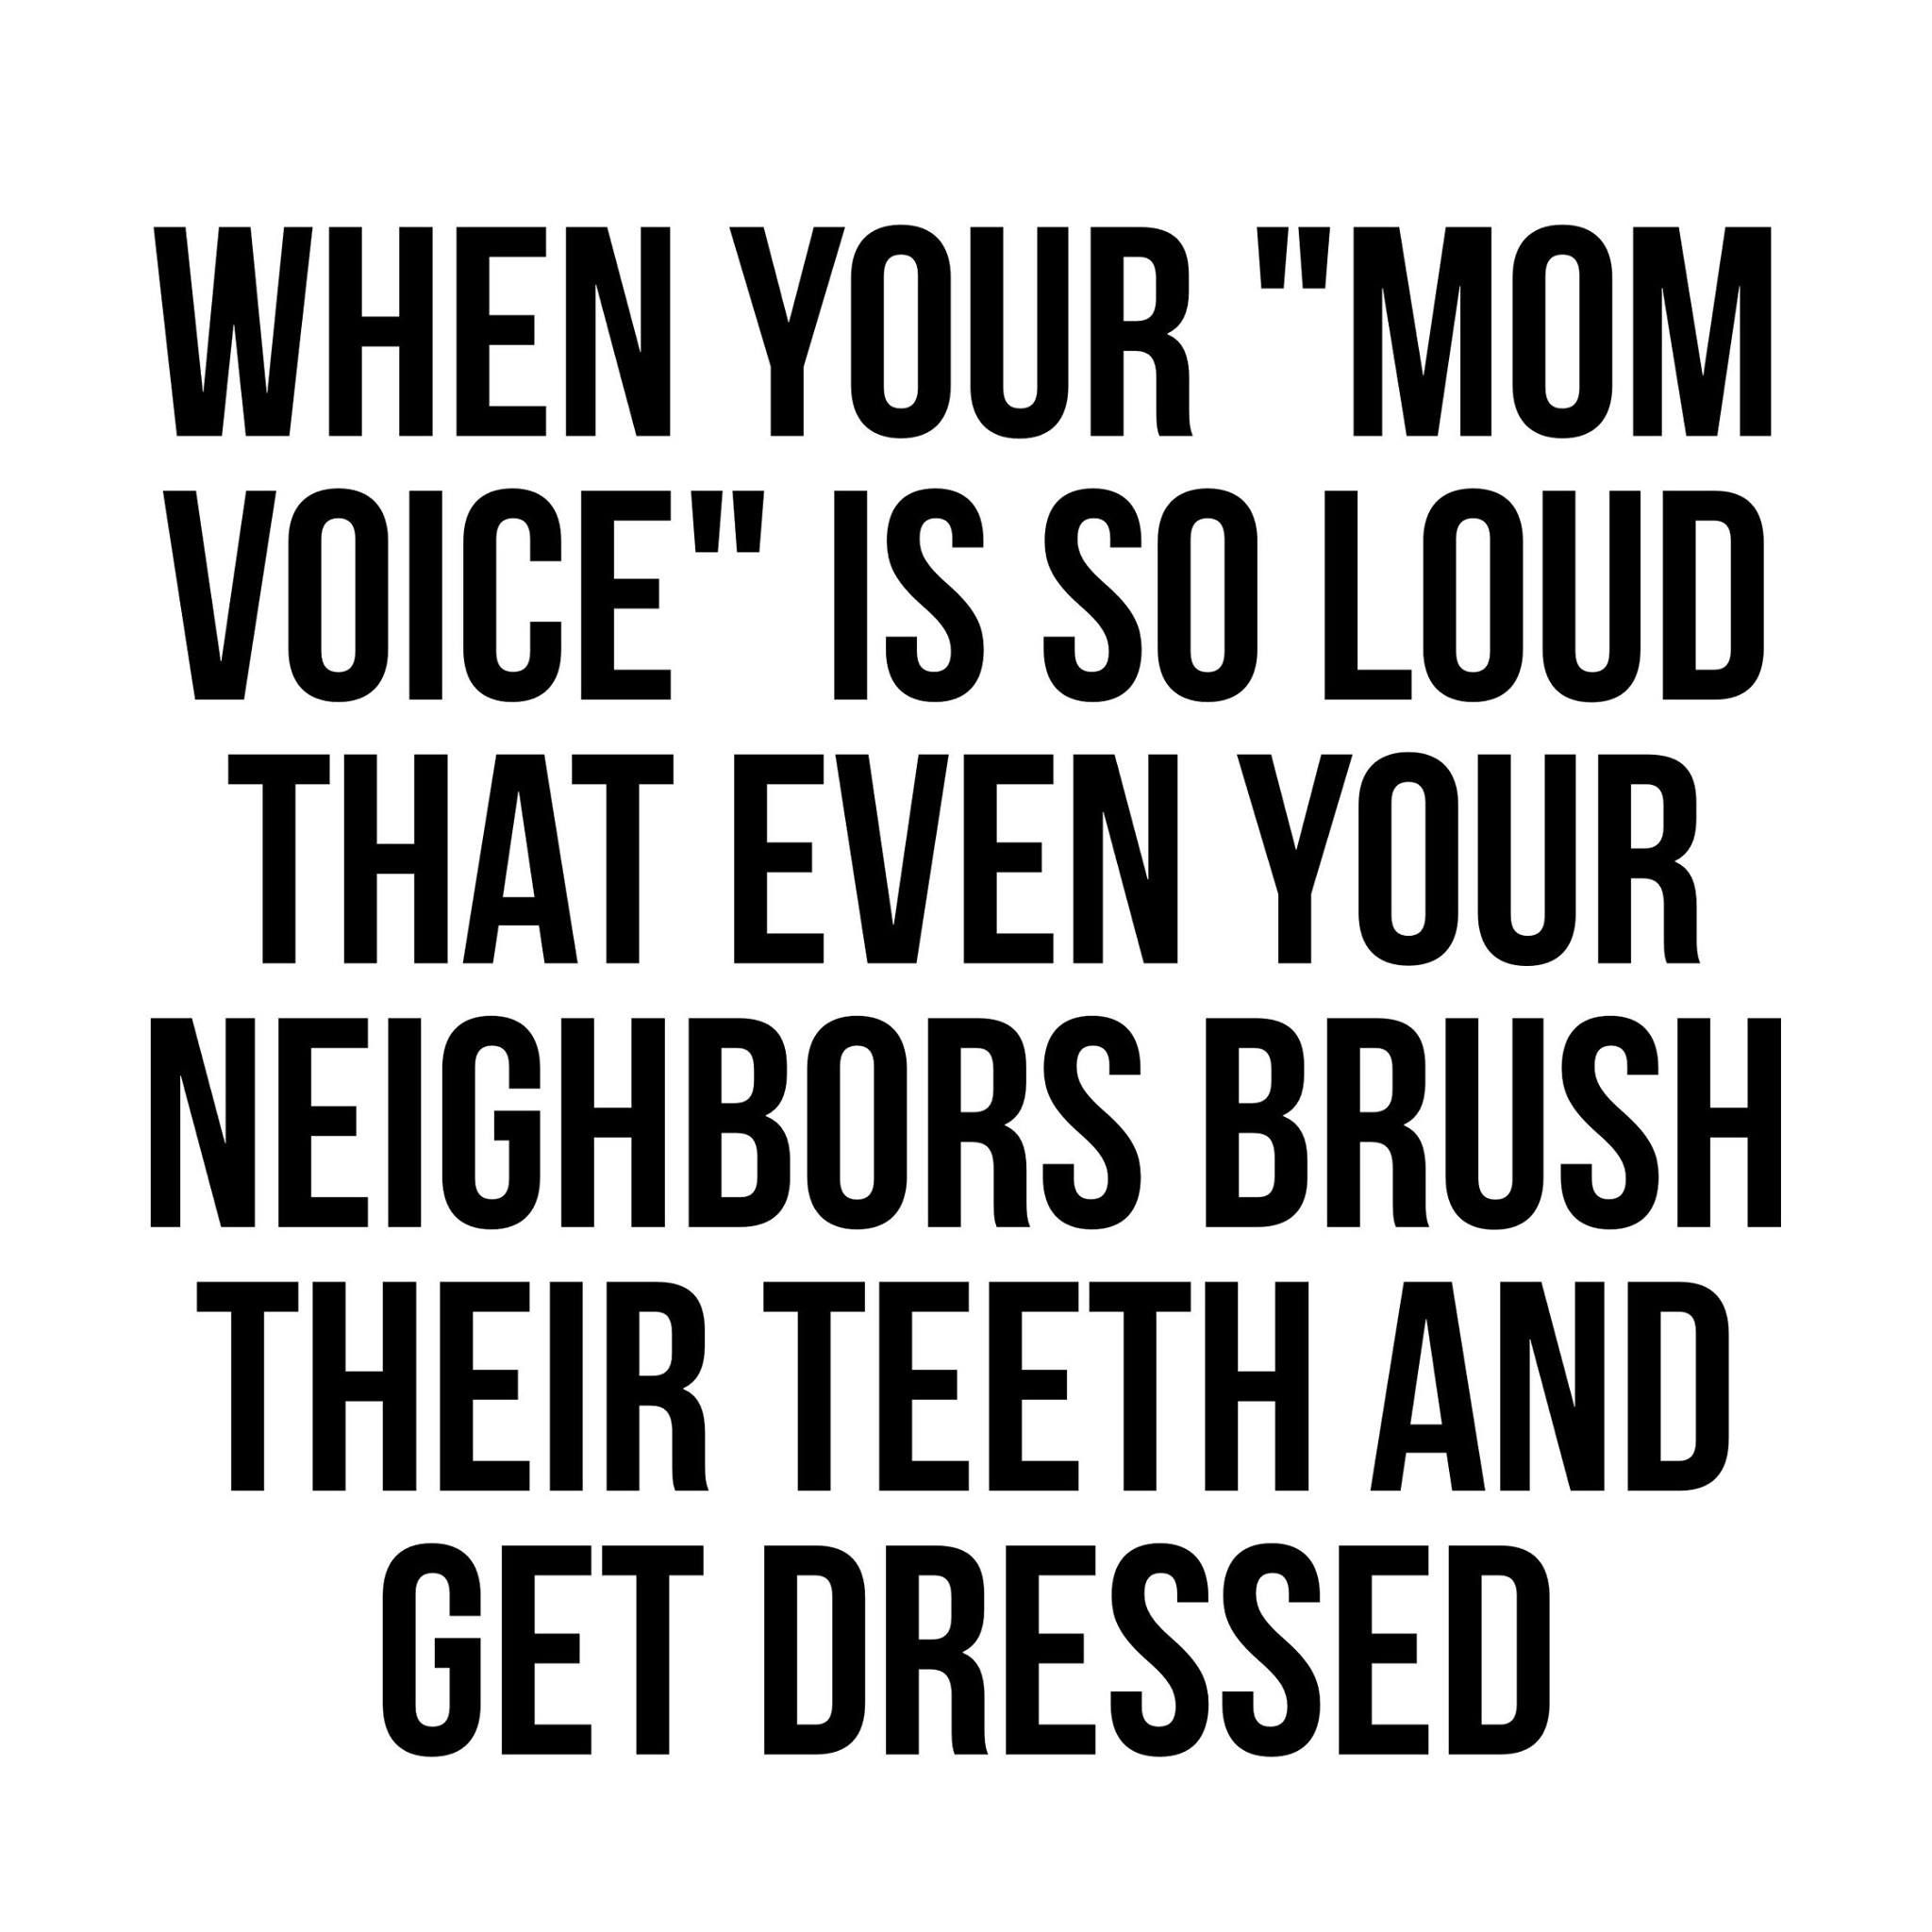 Funny Life Quotes My Mom Hands Down  Laugh It Up  Pinterest  Humour Parents